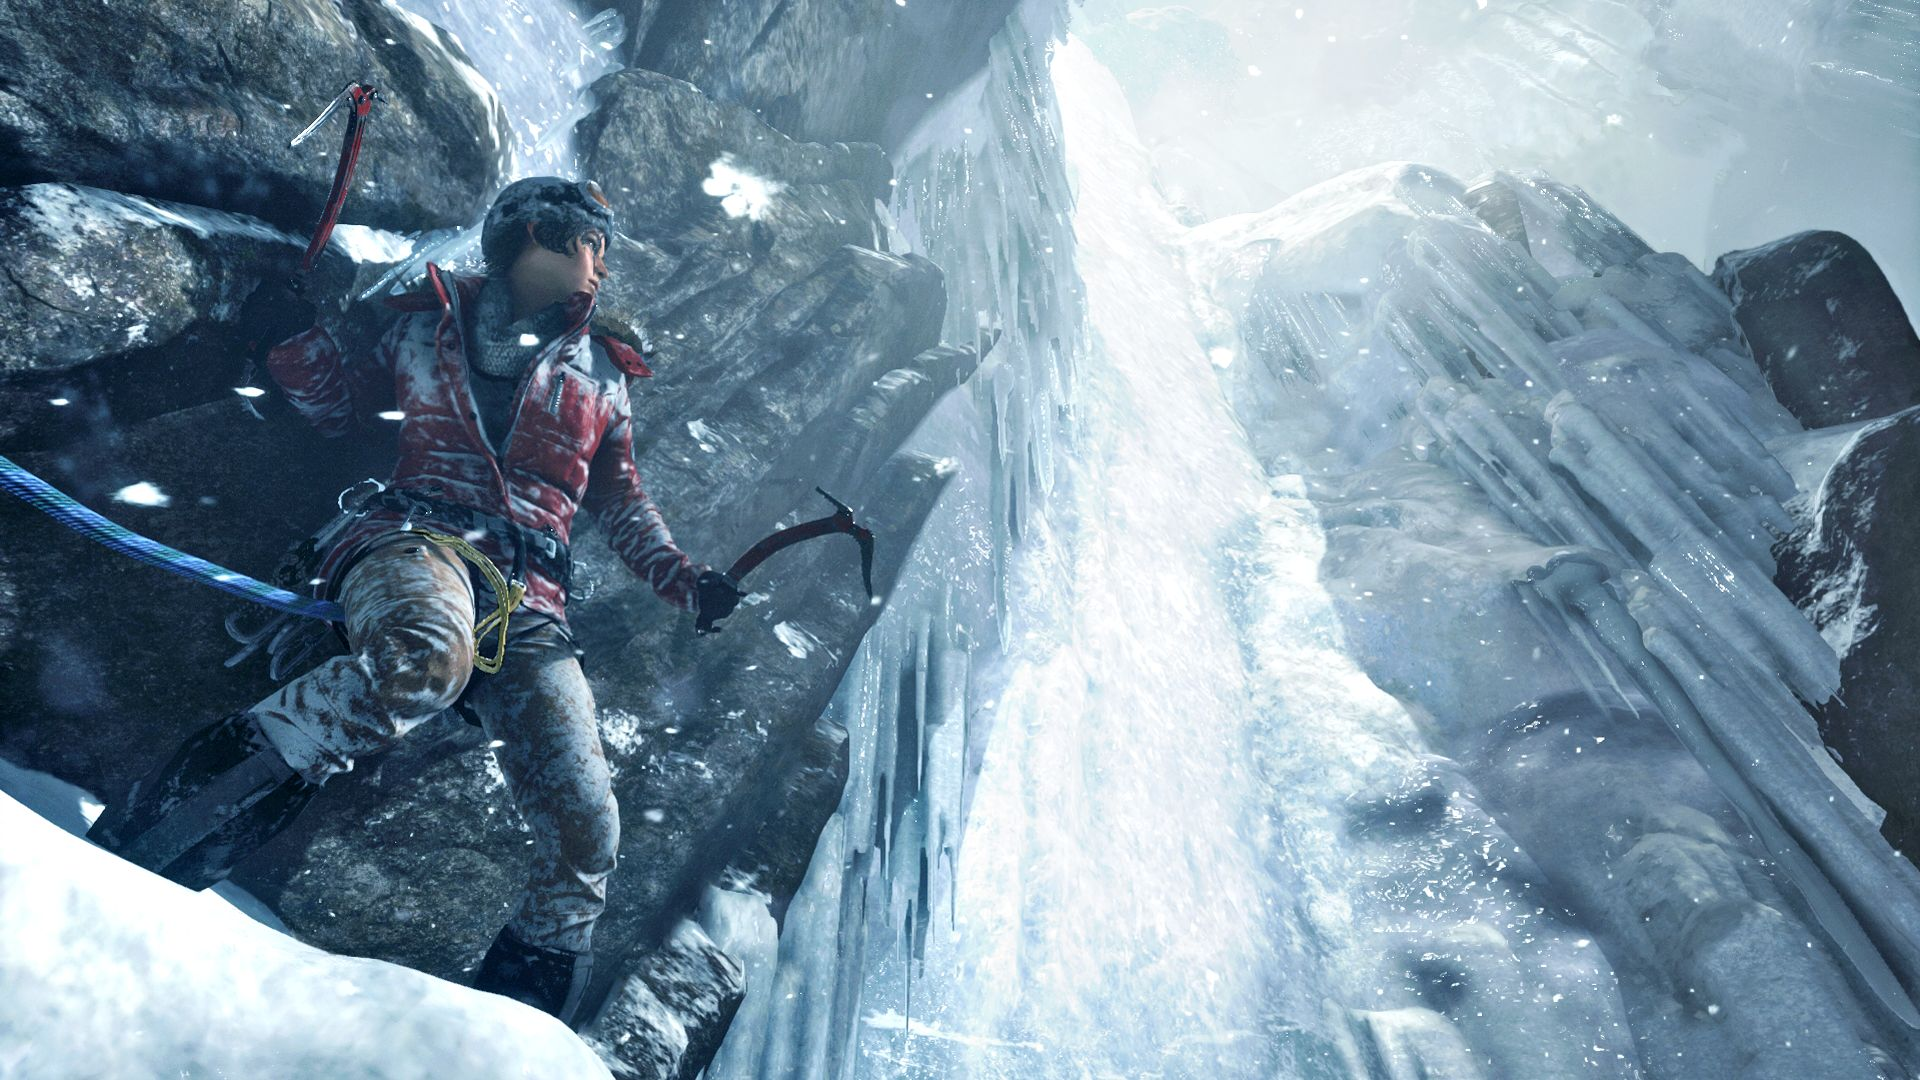 2809263 1424111573 4 1 Rise Of The Tomb Raider PS4 Box Art Looks Very Familiar